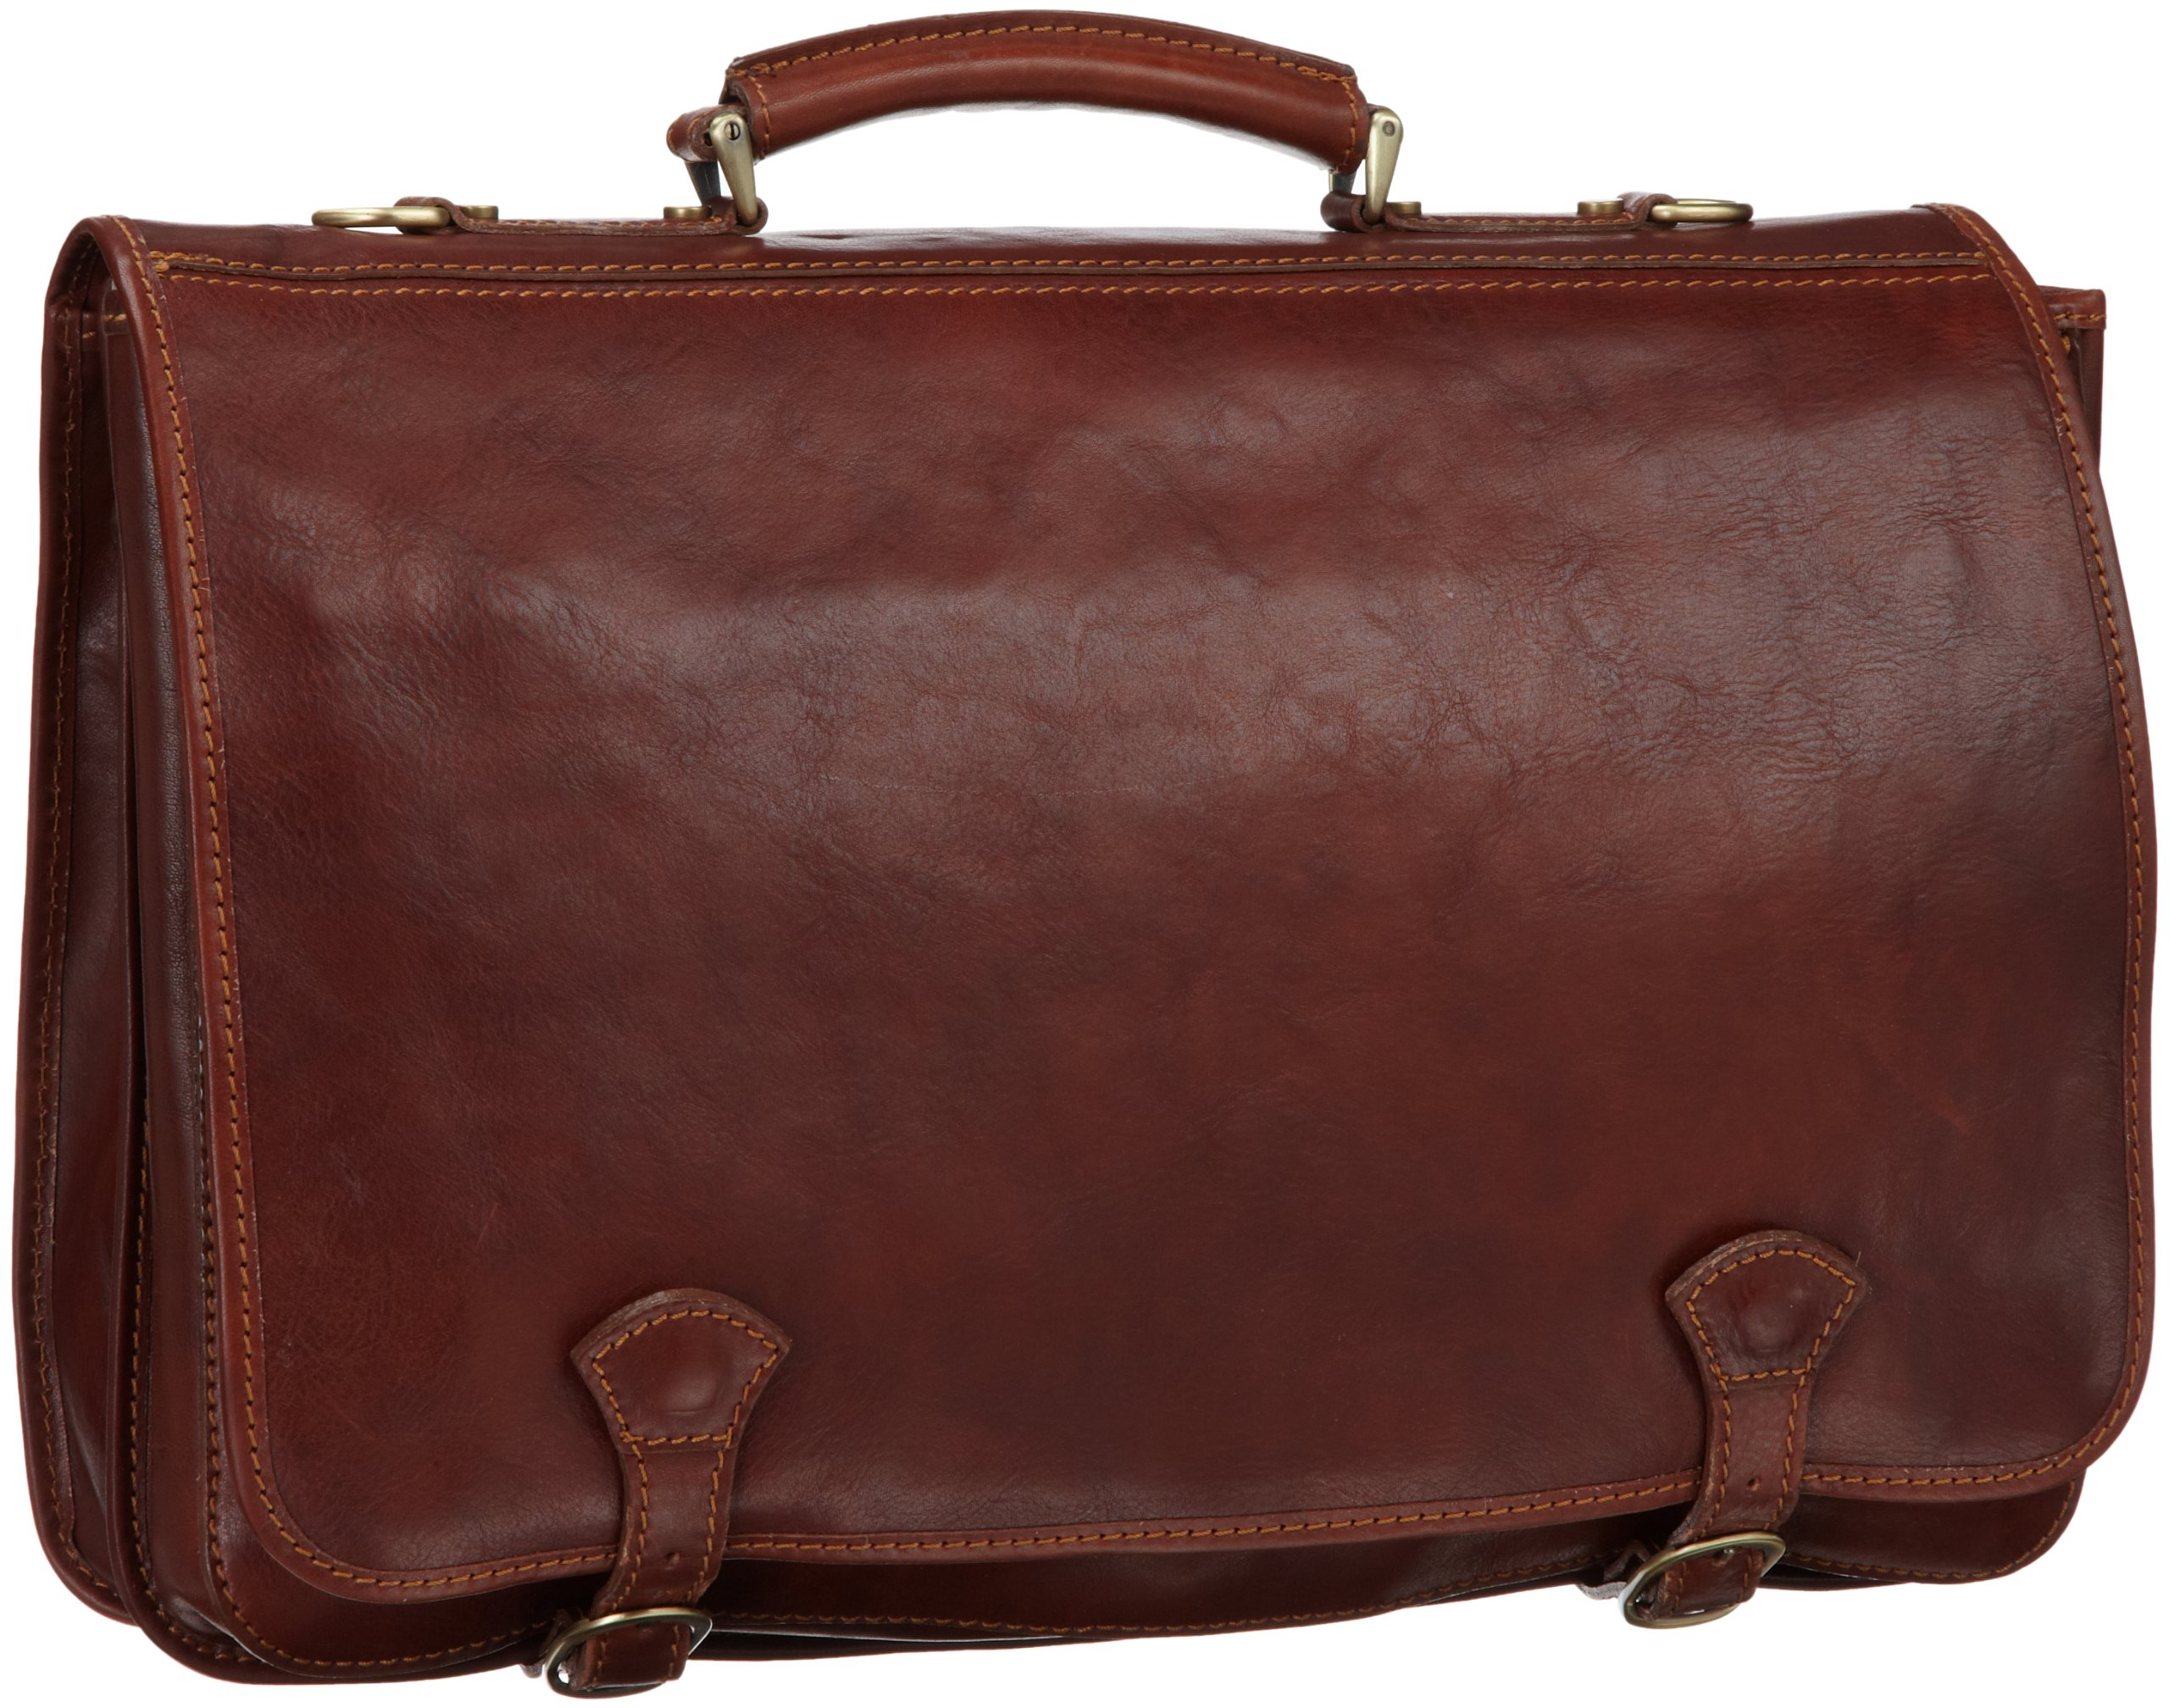 Floto Luggage Piazza Messenger Bag, Brown, One Size